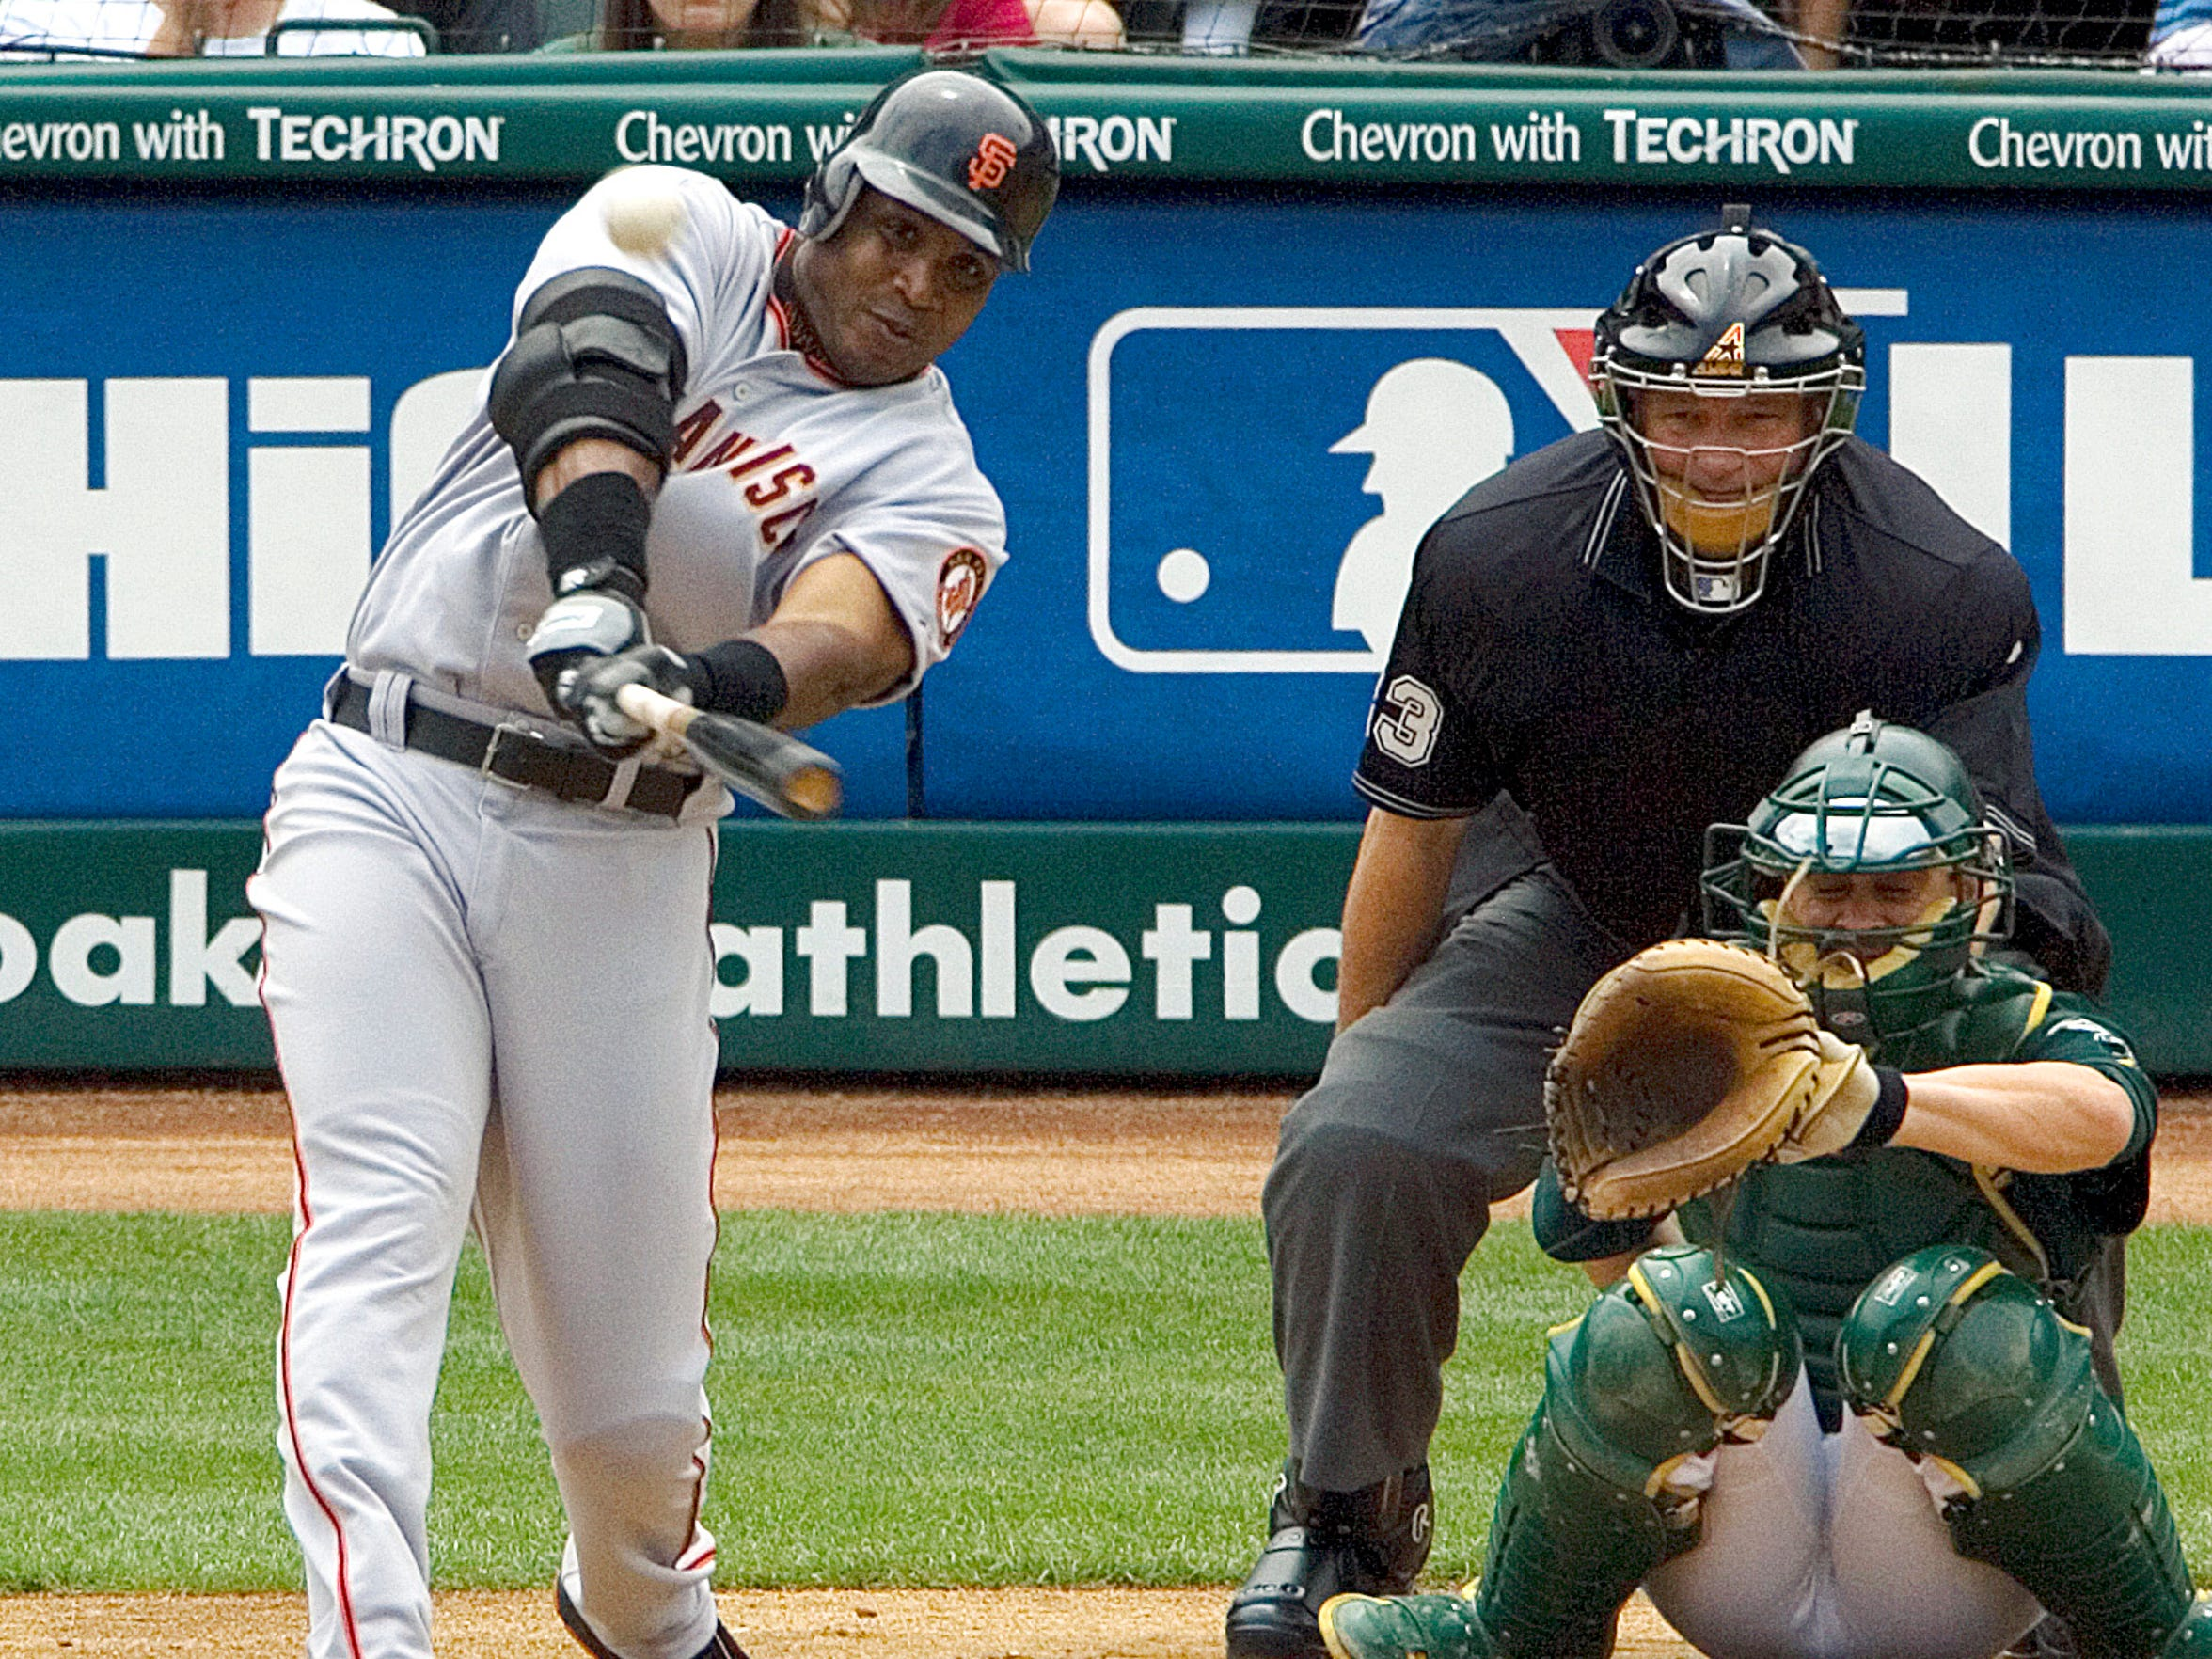 Facing Brad Halsey on May 20, 2006, San Francisco Giants slugger Barry Bonds hits his 714th career home run to tie Babe Ruth for second in career home runs.